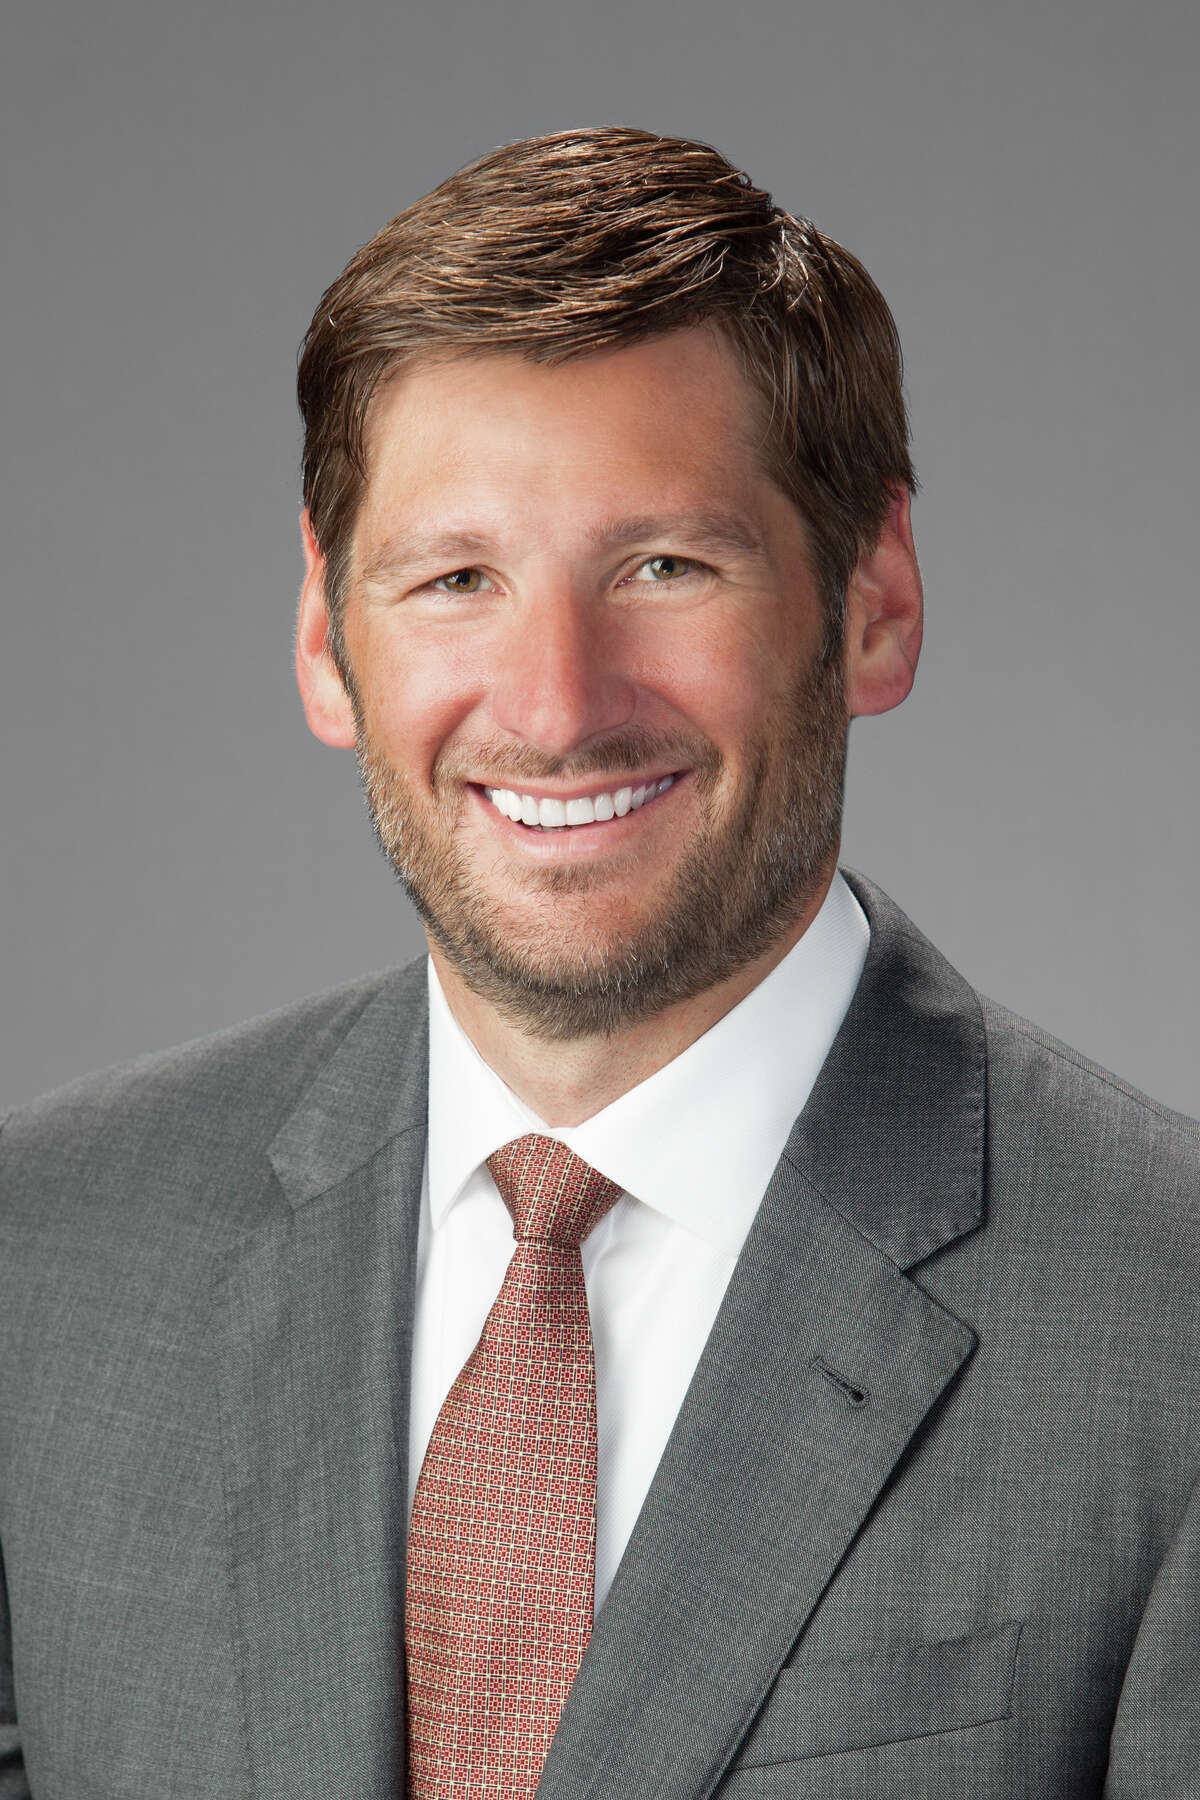 Brian W. Freed has been named senior vice president, midstream and marketing, at Apache Corp.